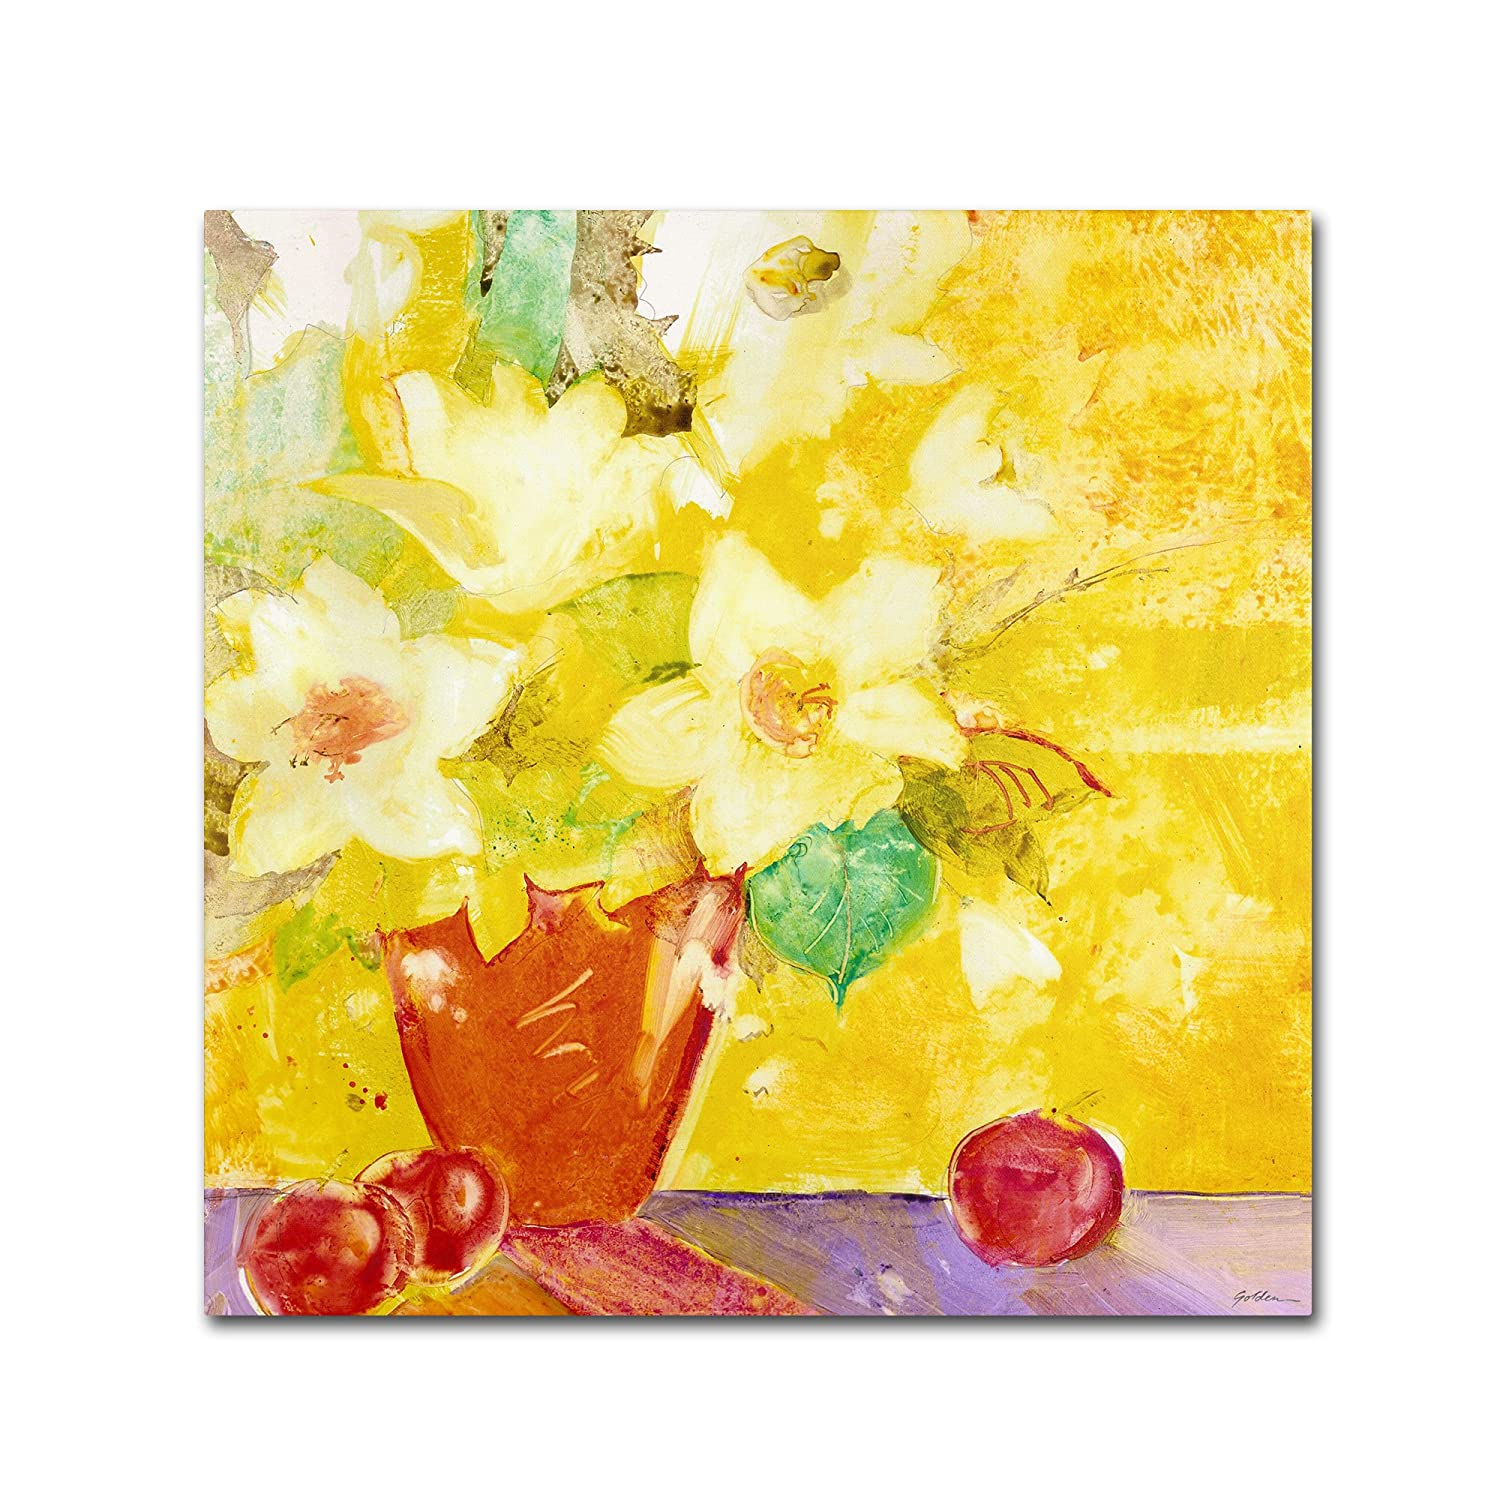 Trademark Fine Art レッド花瓶 Apple Artwork by Sheila Golden 35by35-Inch SG5667-C3535GG B00G6J3RZO  35by35-Inch